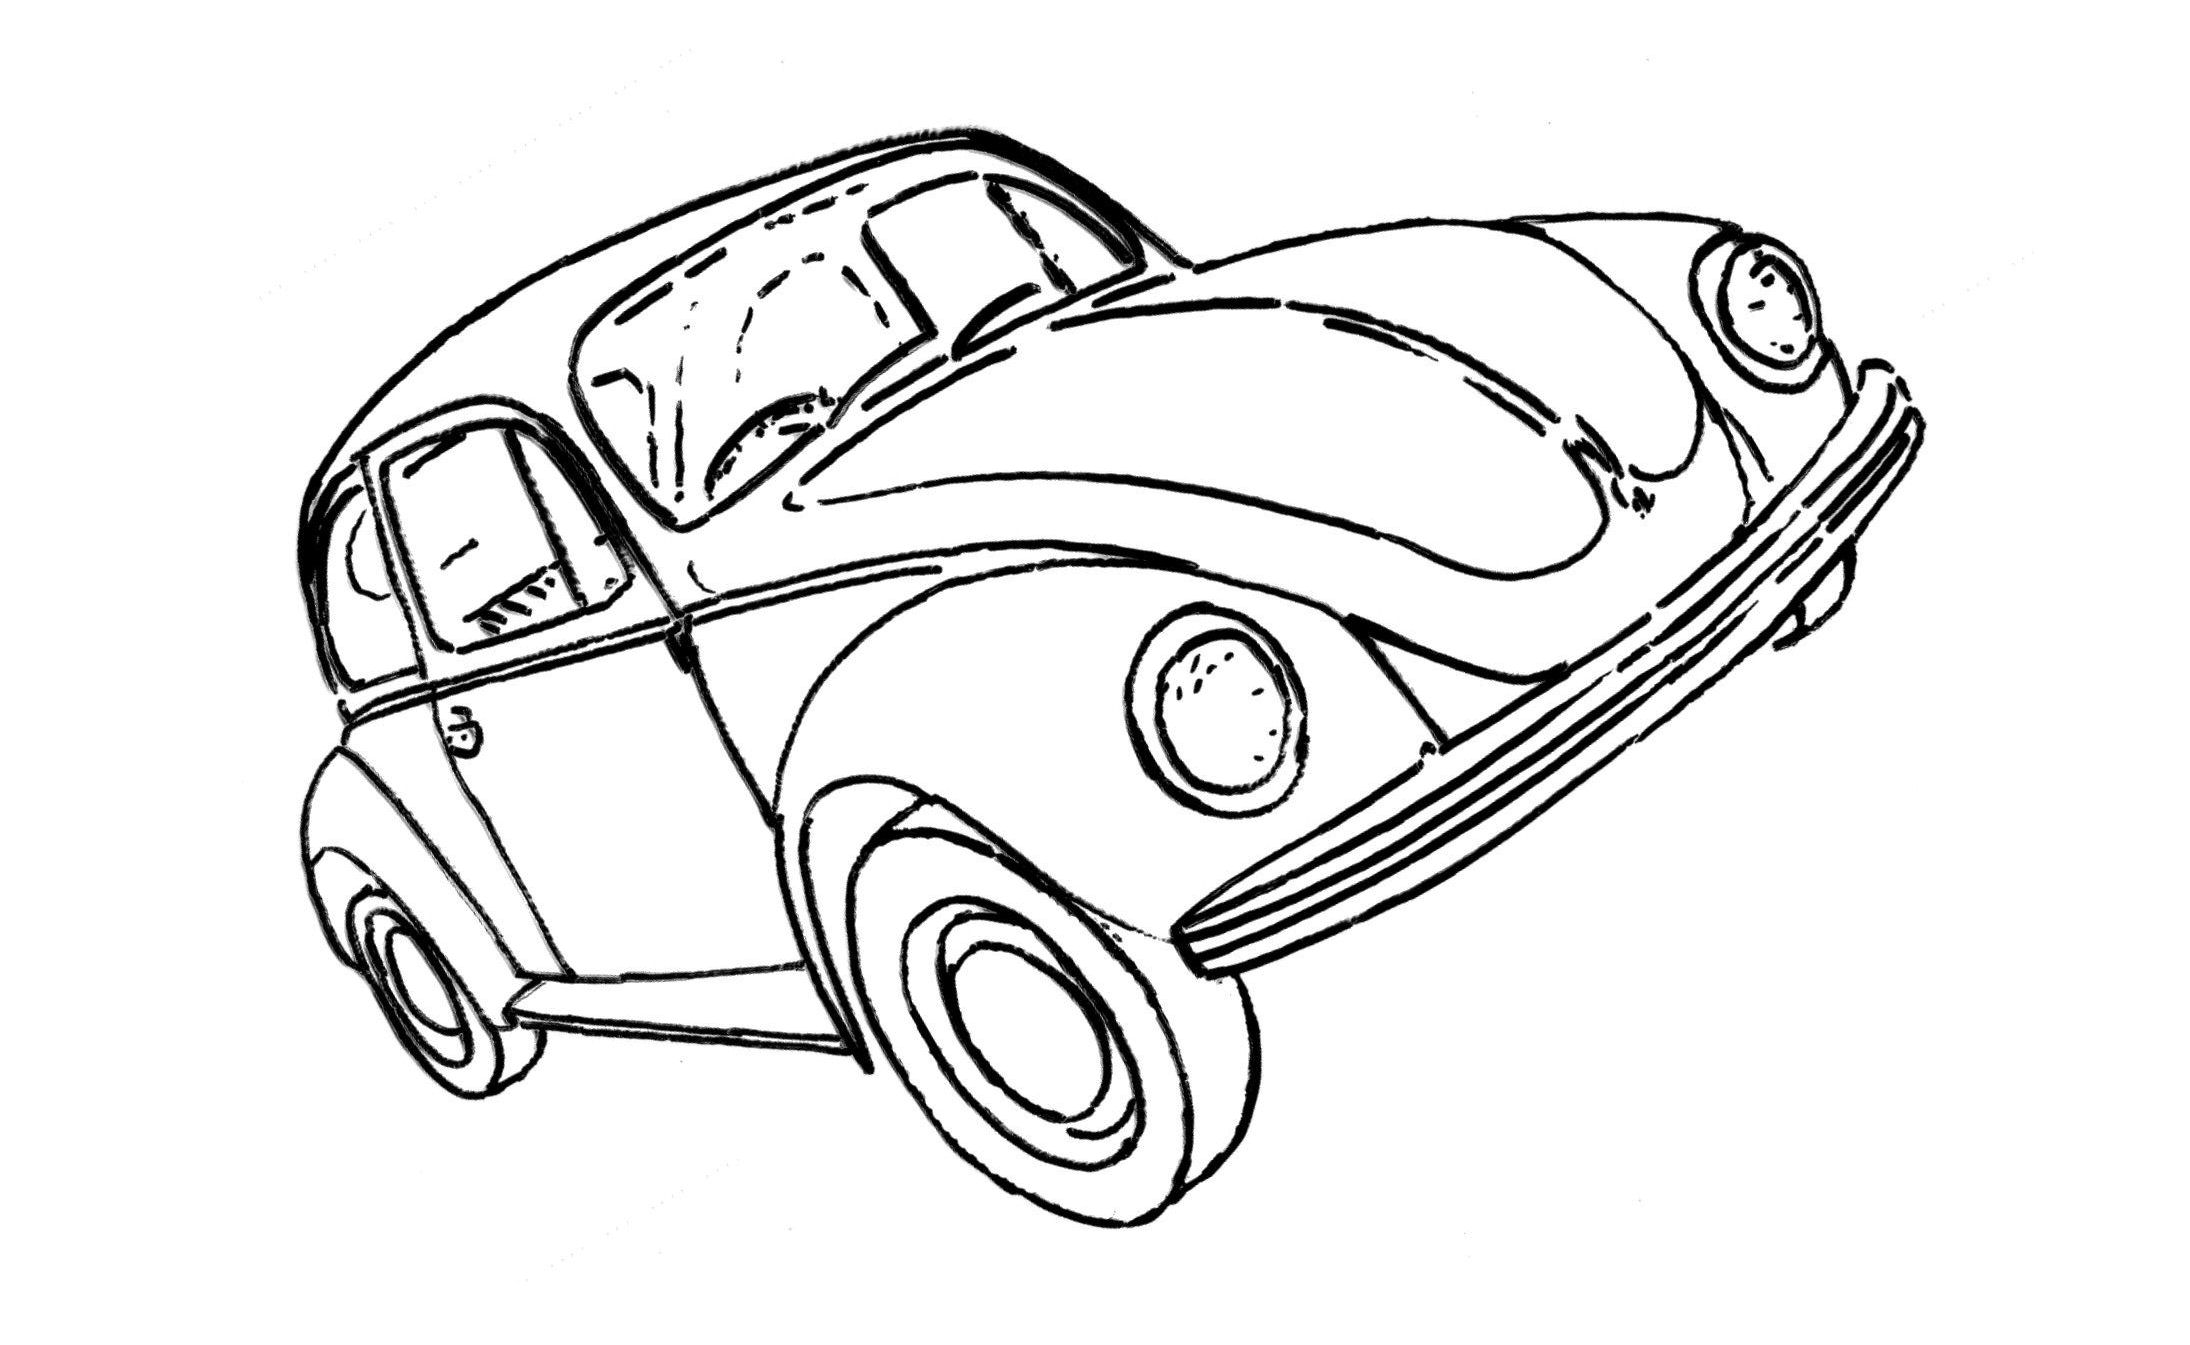 Vw Beetle Drawing At Getdrawings